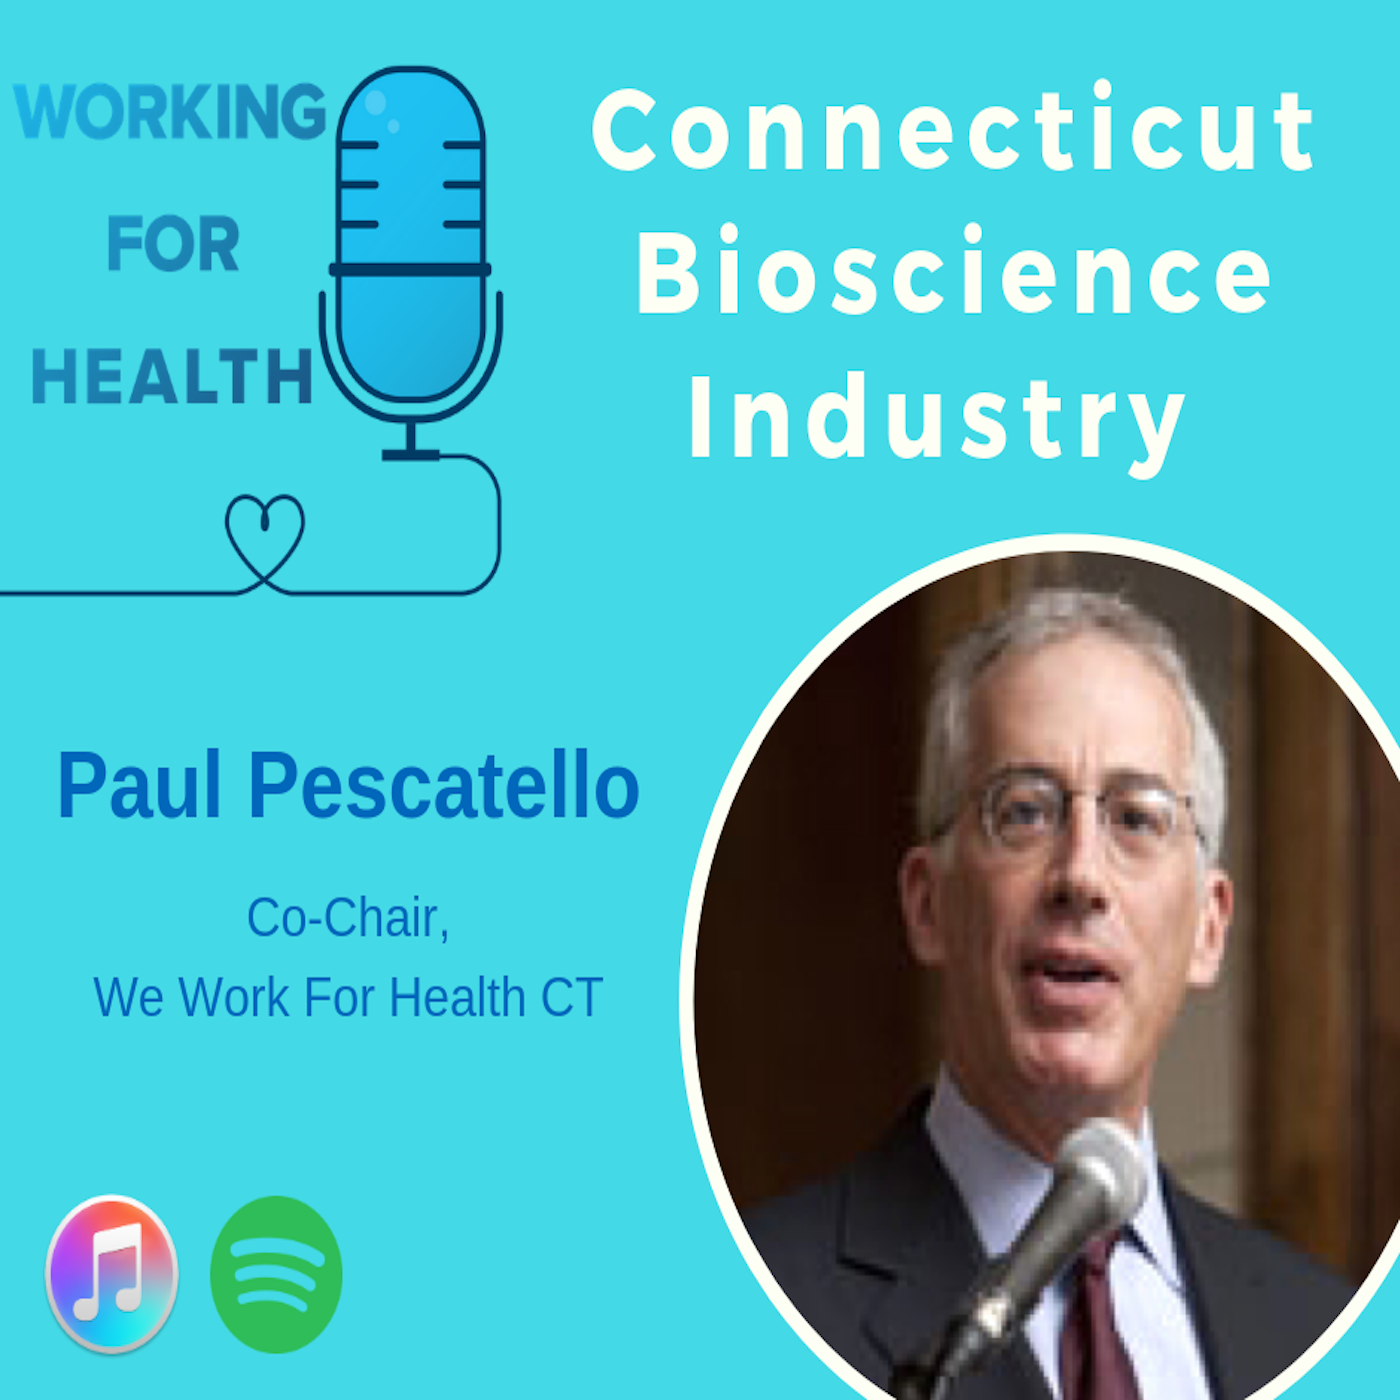 #1 Paul Pescatello on CT Bioscience Industry